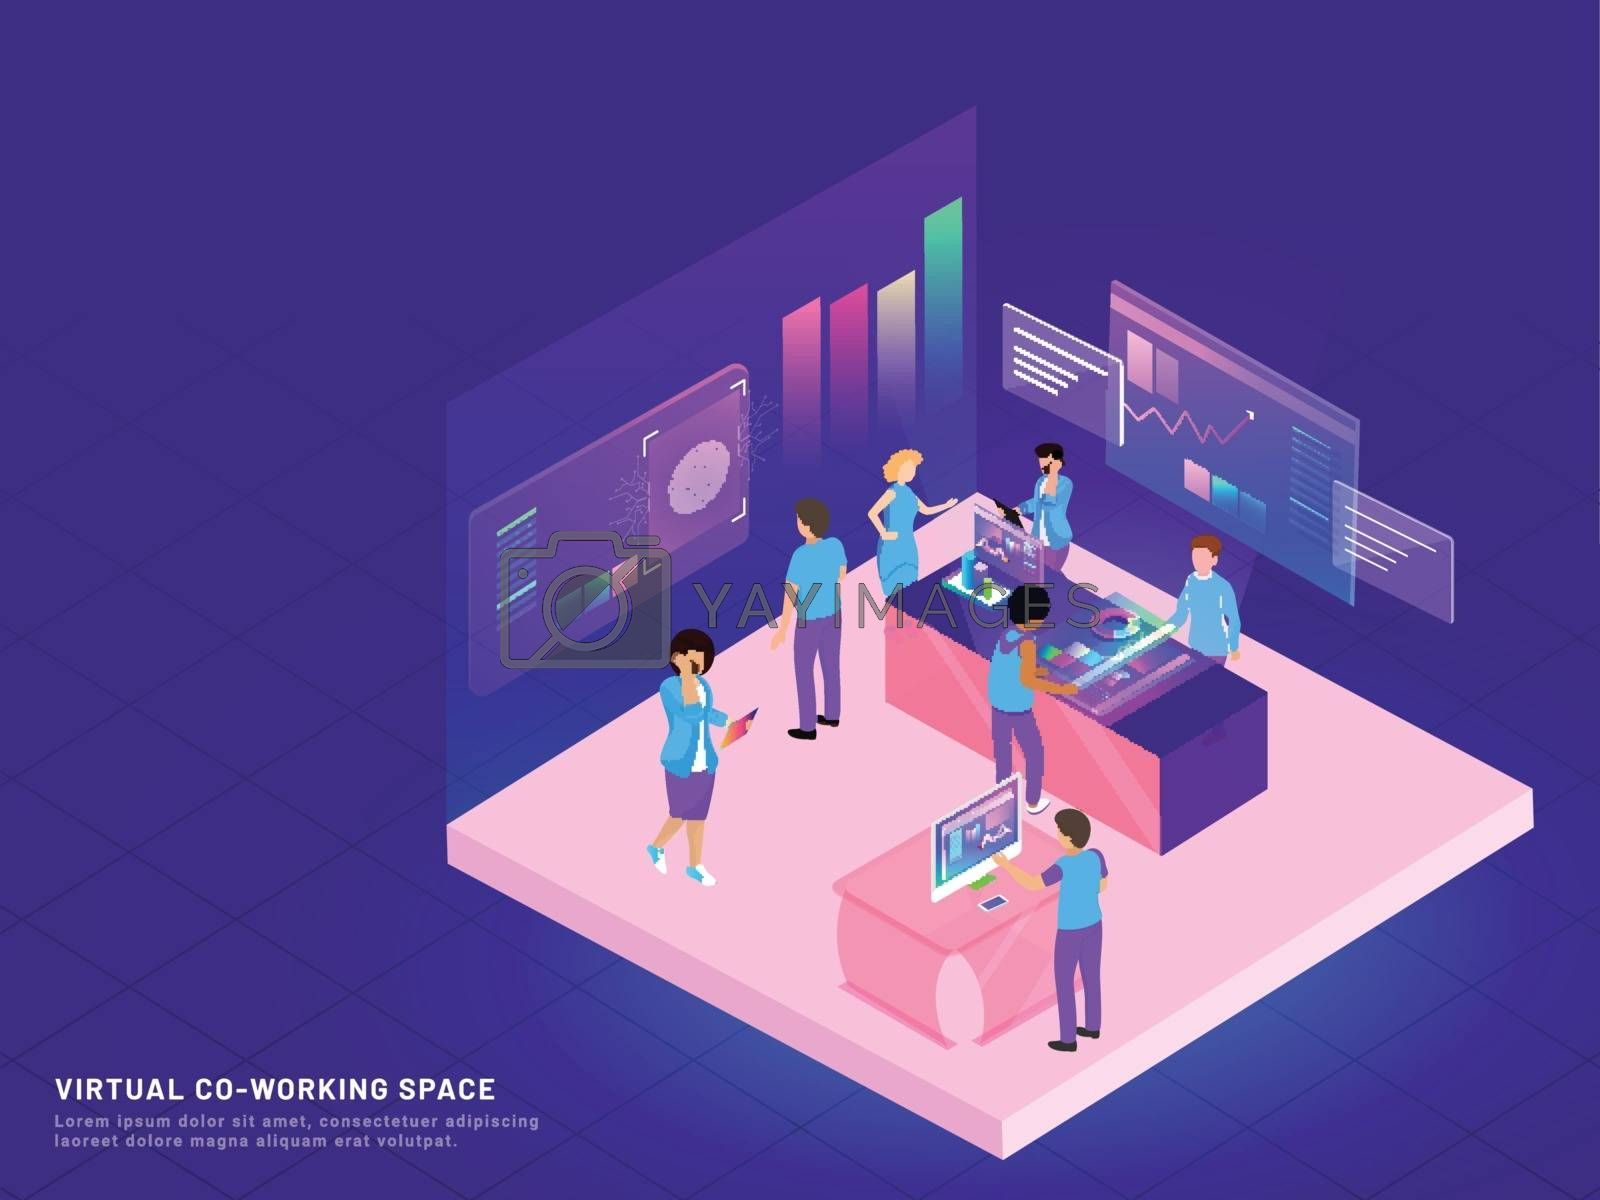 Royalty free image of Virtual Co-Working Space, isometric design with business people  by aispl